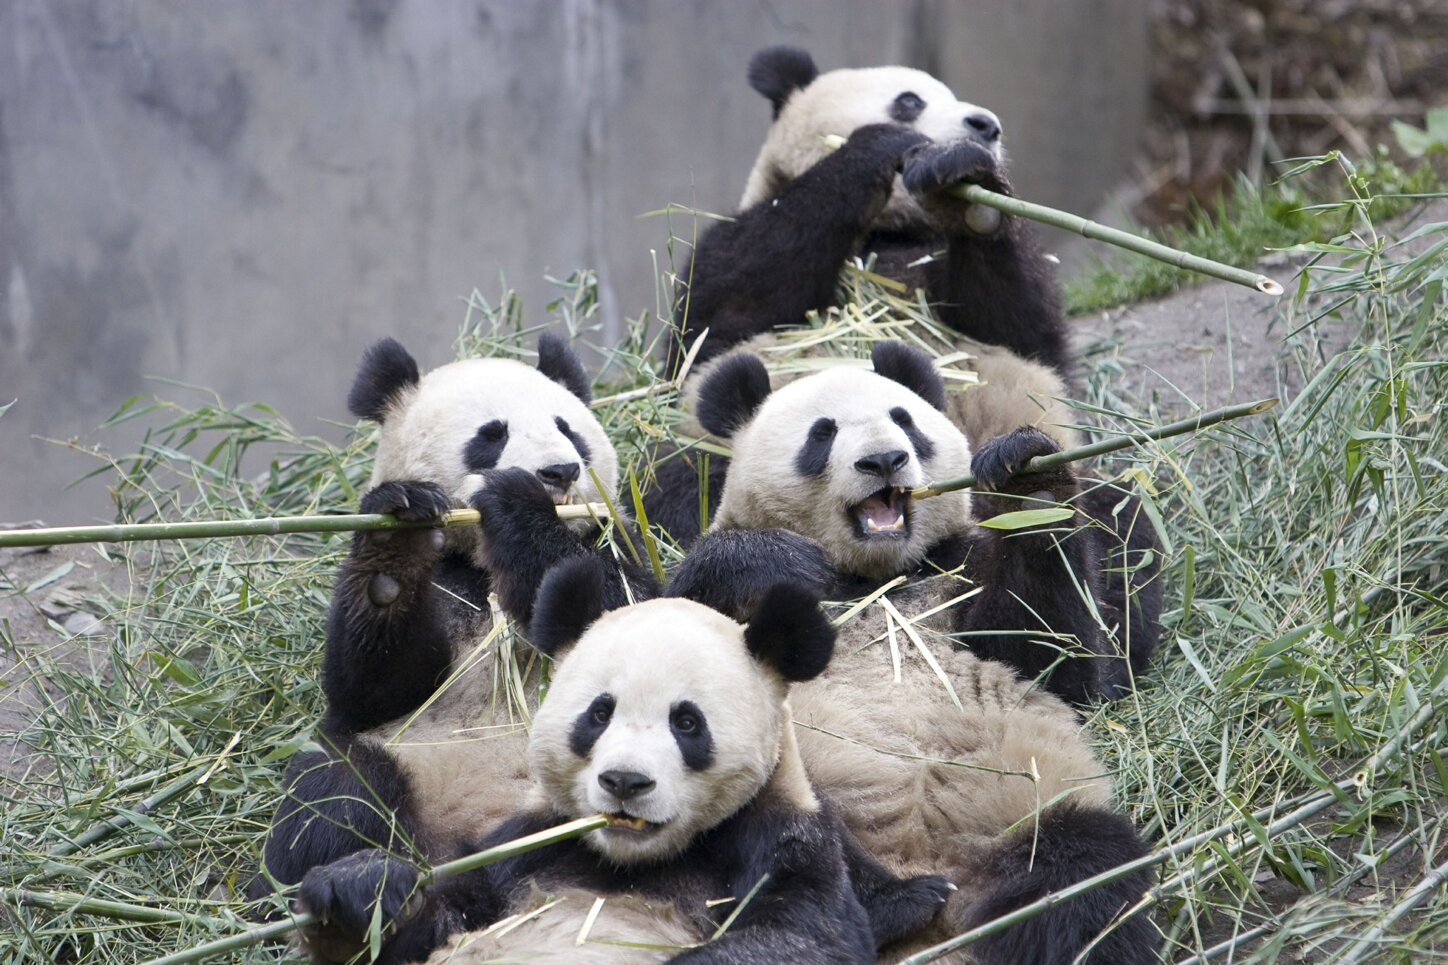 Group of pandas eating bamboo